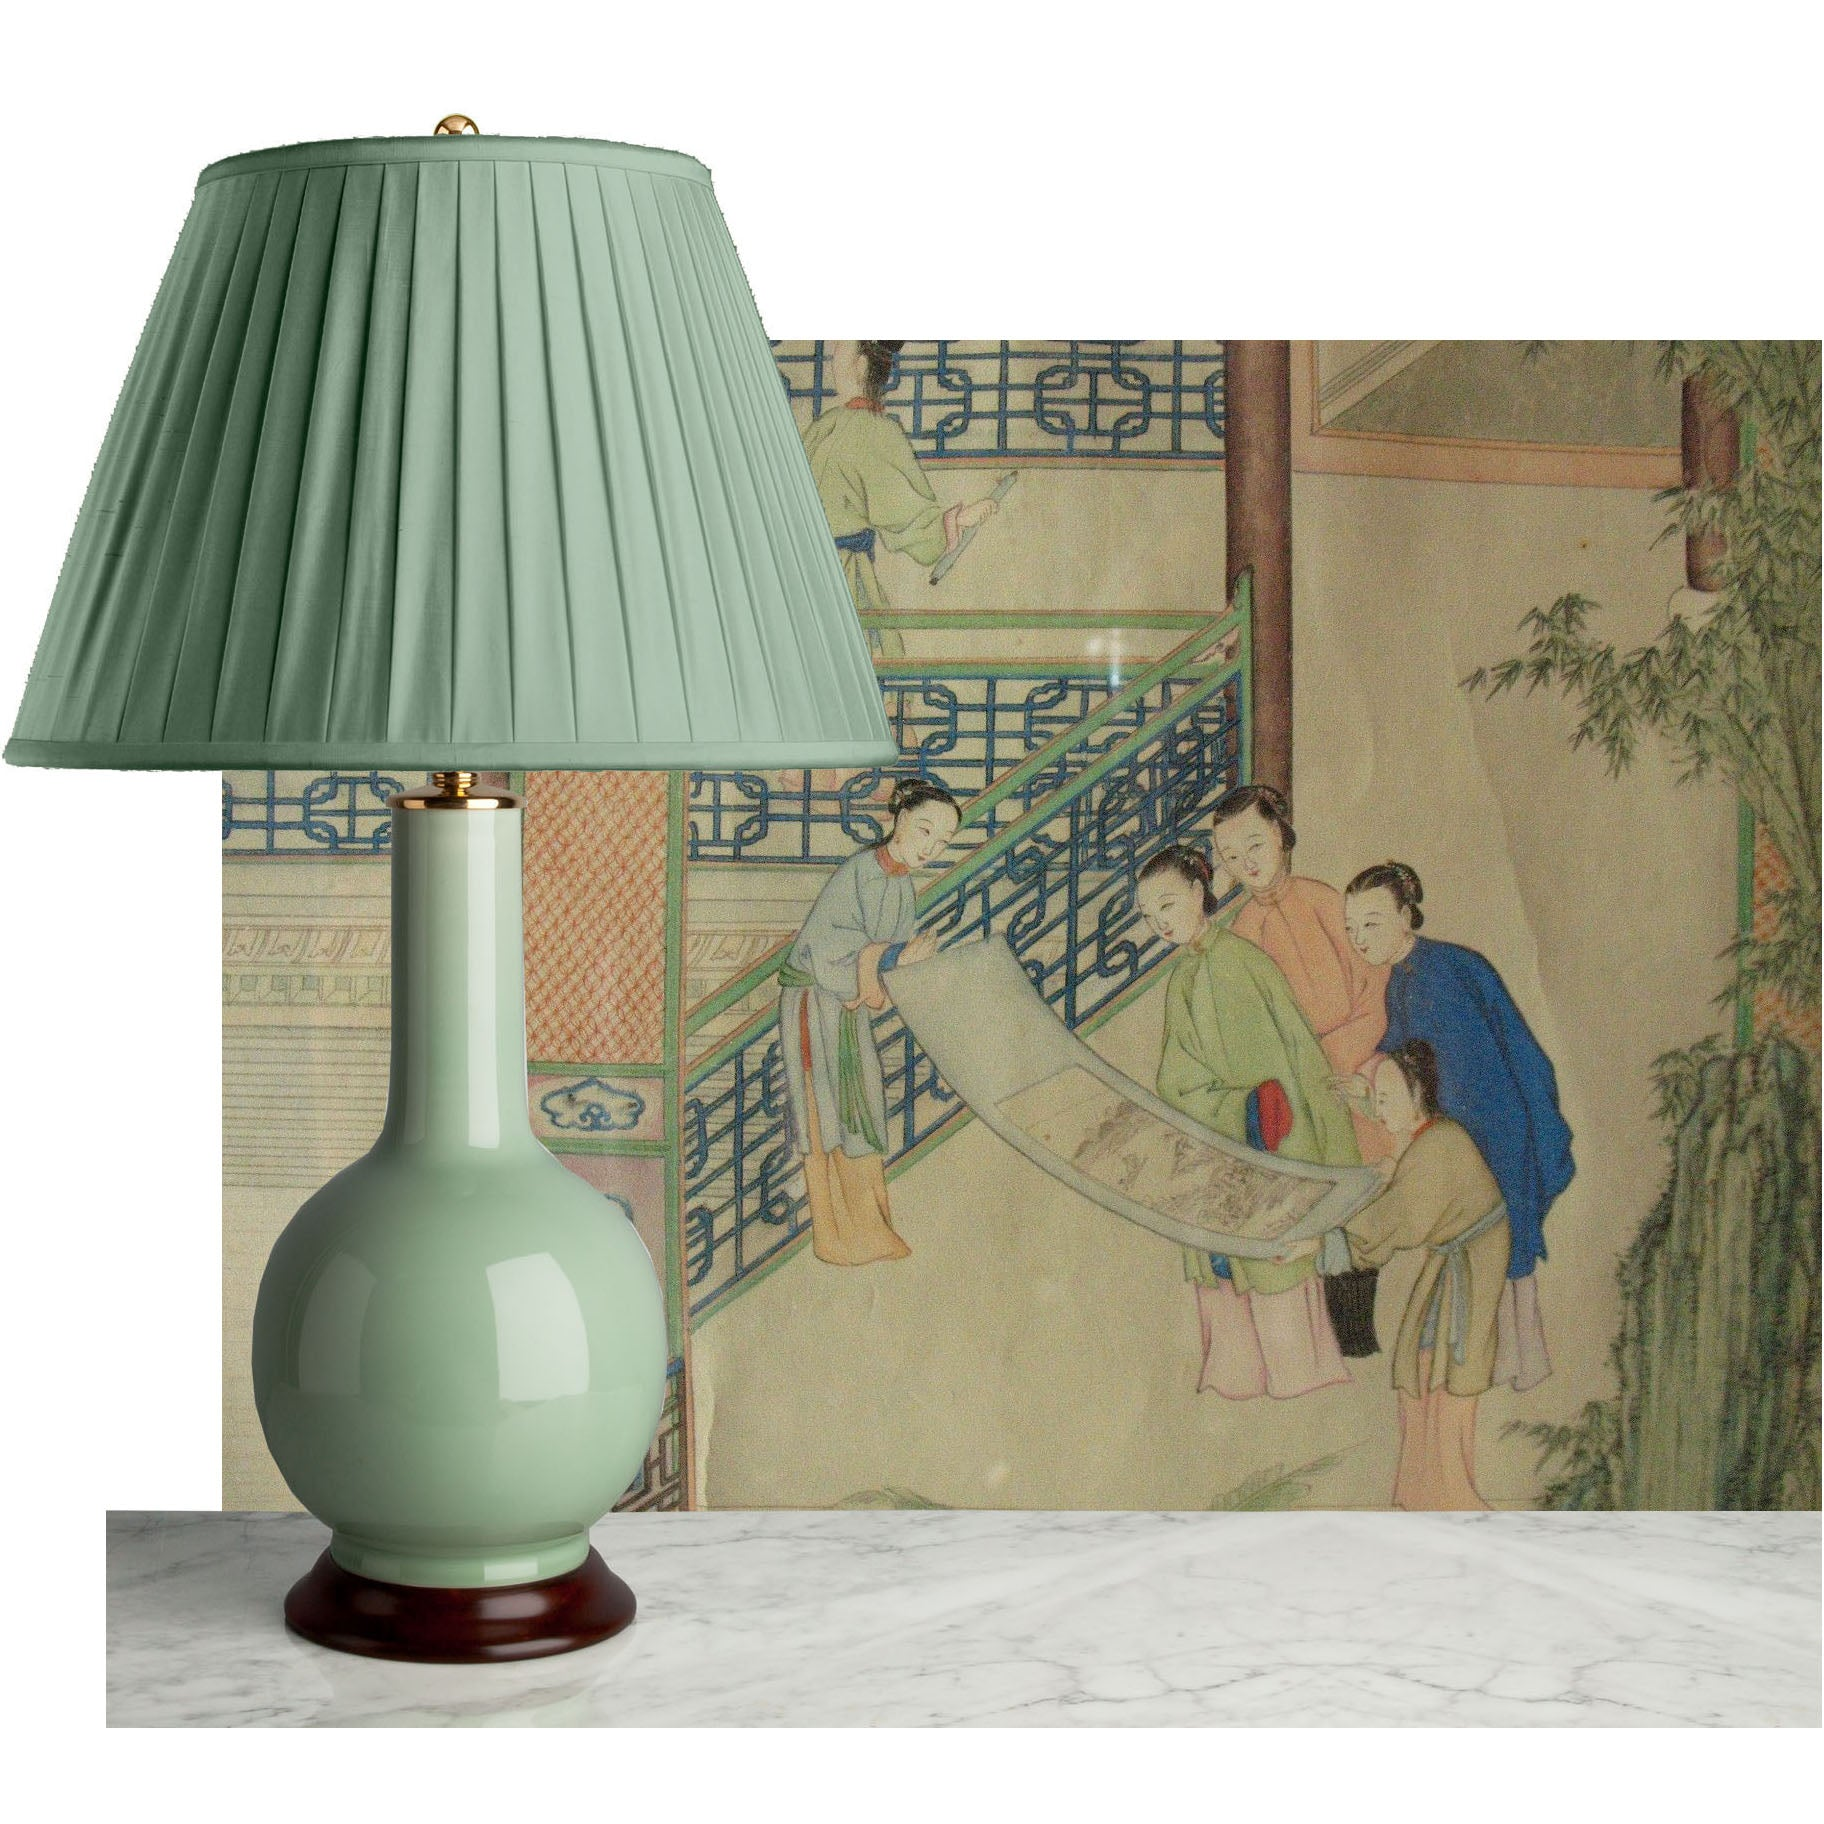 E031  An Early 20th Century, Bottle Shaped Celadon Chinese Lamp - Circa 1910